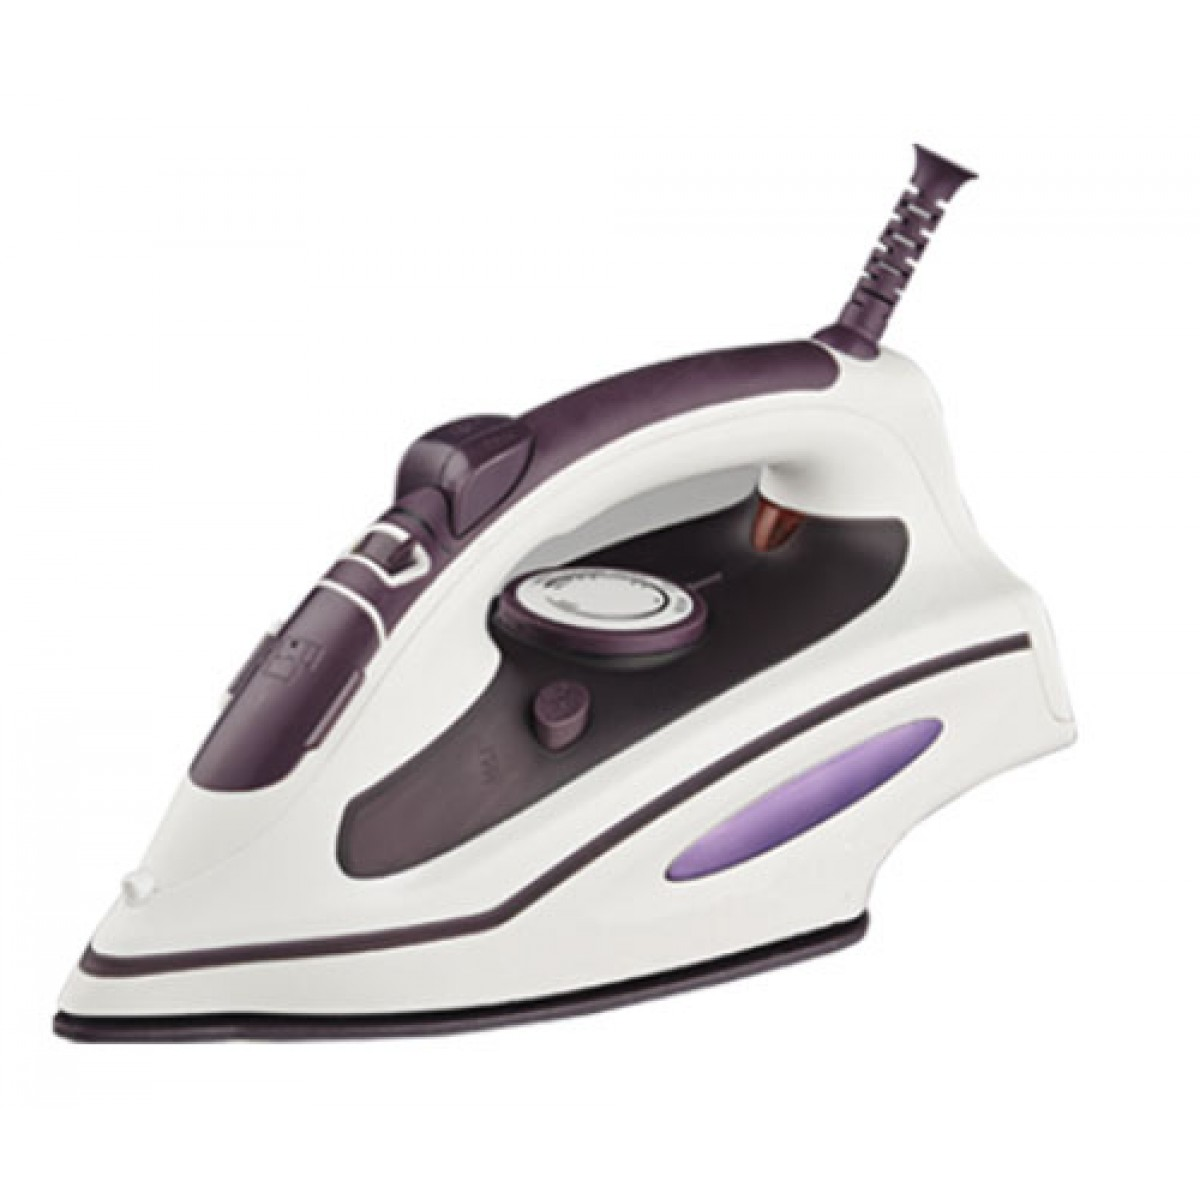 Cambridge Steam Iron St-783